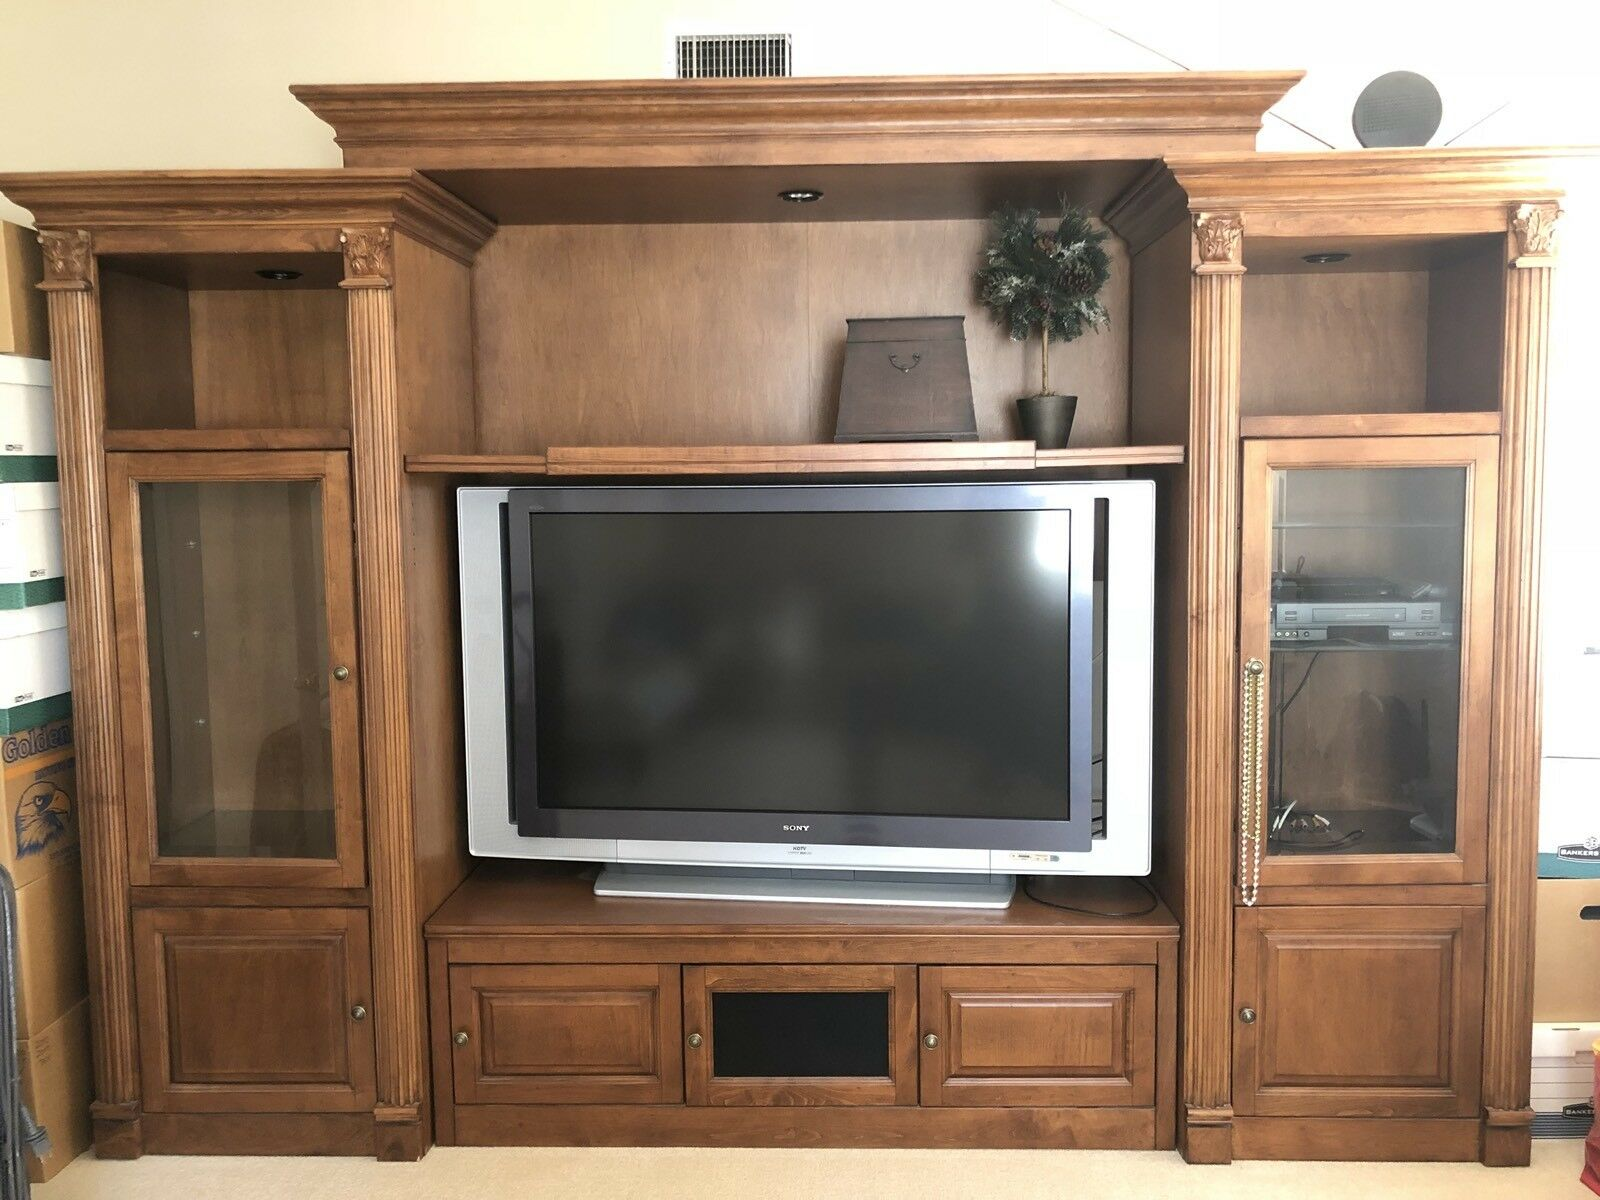 Modern TV Credenza With Stereo Shelves, Lights, Glass Doors And Speaker  Cabinets 1 Of 11Only 1 Available ...